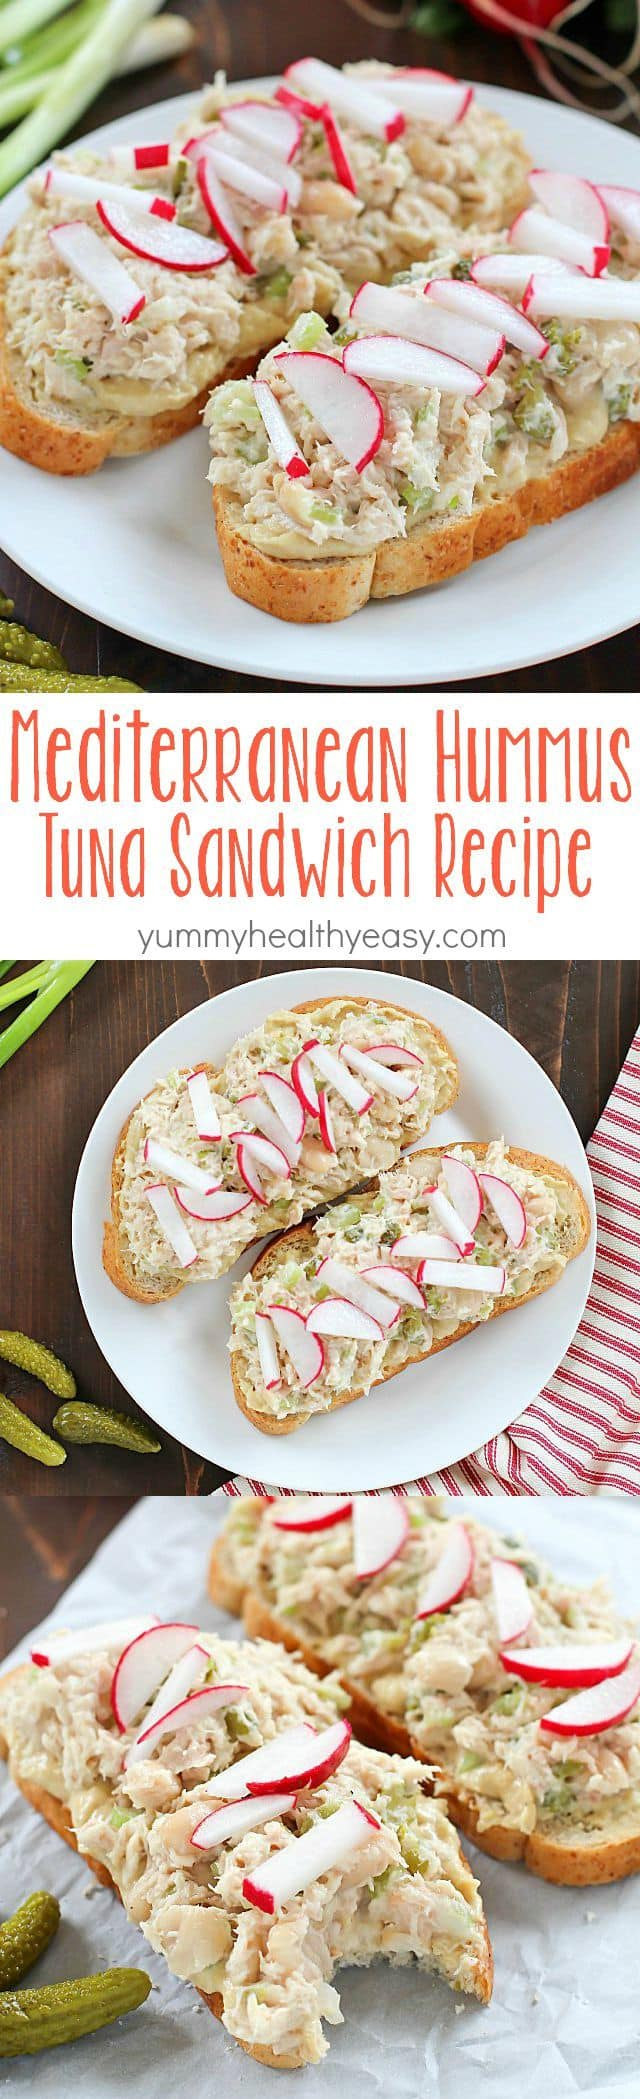 Take that boring tuna sandwich to the next level and make this Mediterranean Hummus Tuna Sandwich Recipe! It's easy, healthy and super flavorful! Definitely a lunchtime winner!